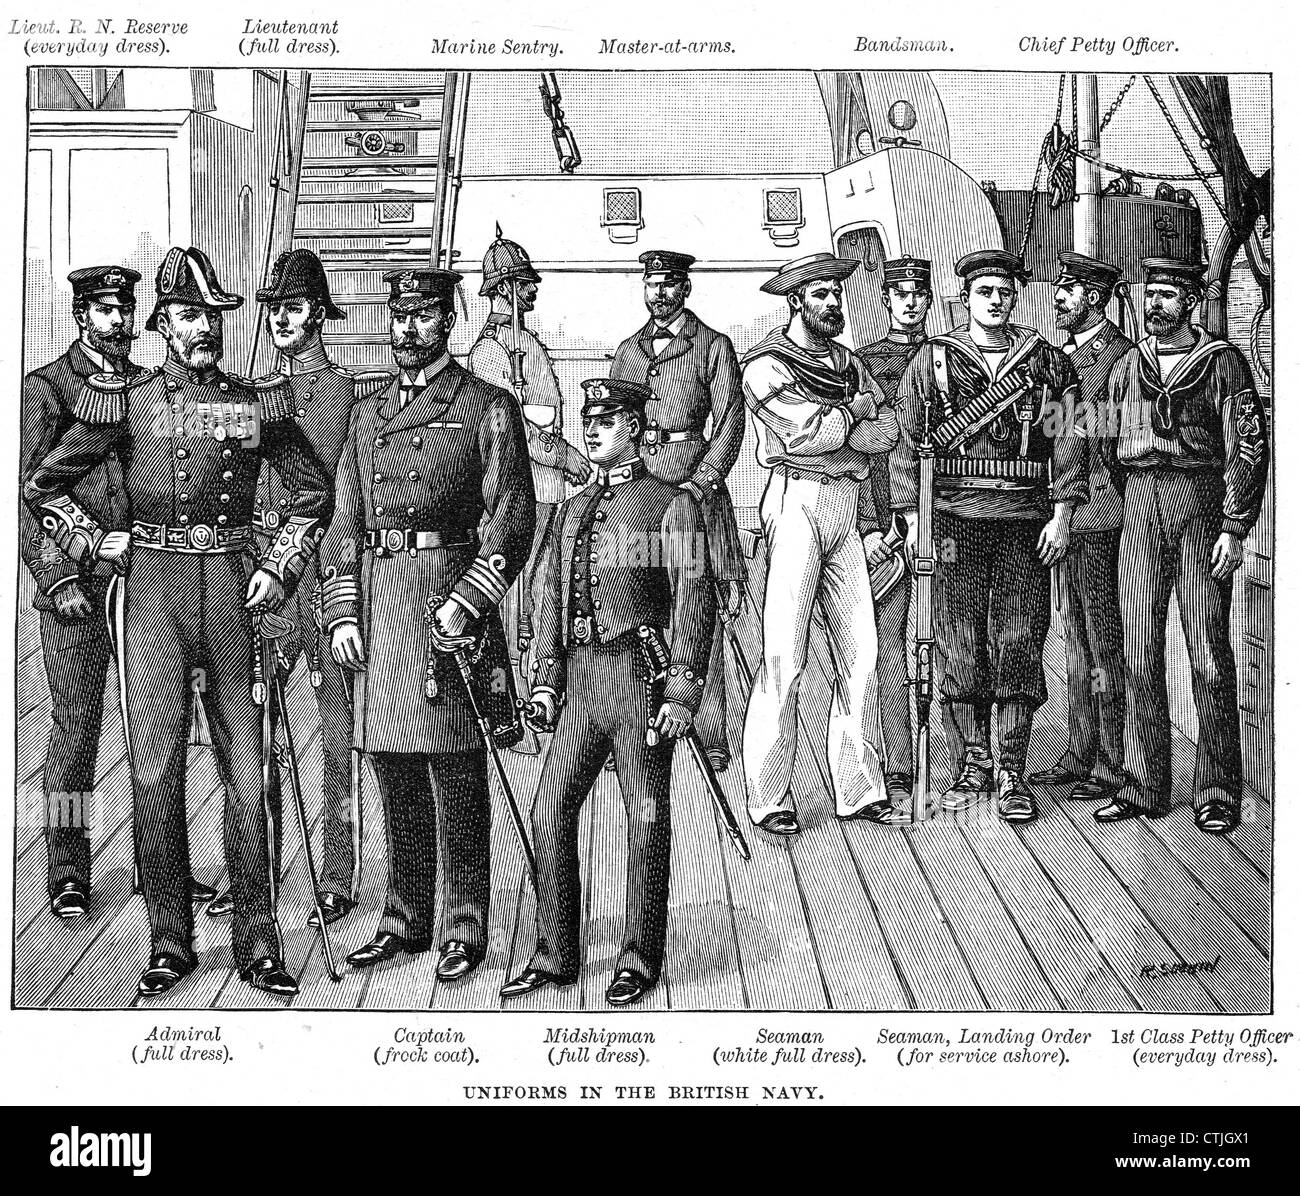 UNIFORMS OF THE BRITISH NAVY about 1900 - Stock Image